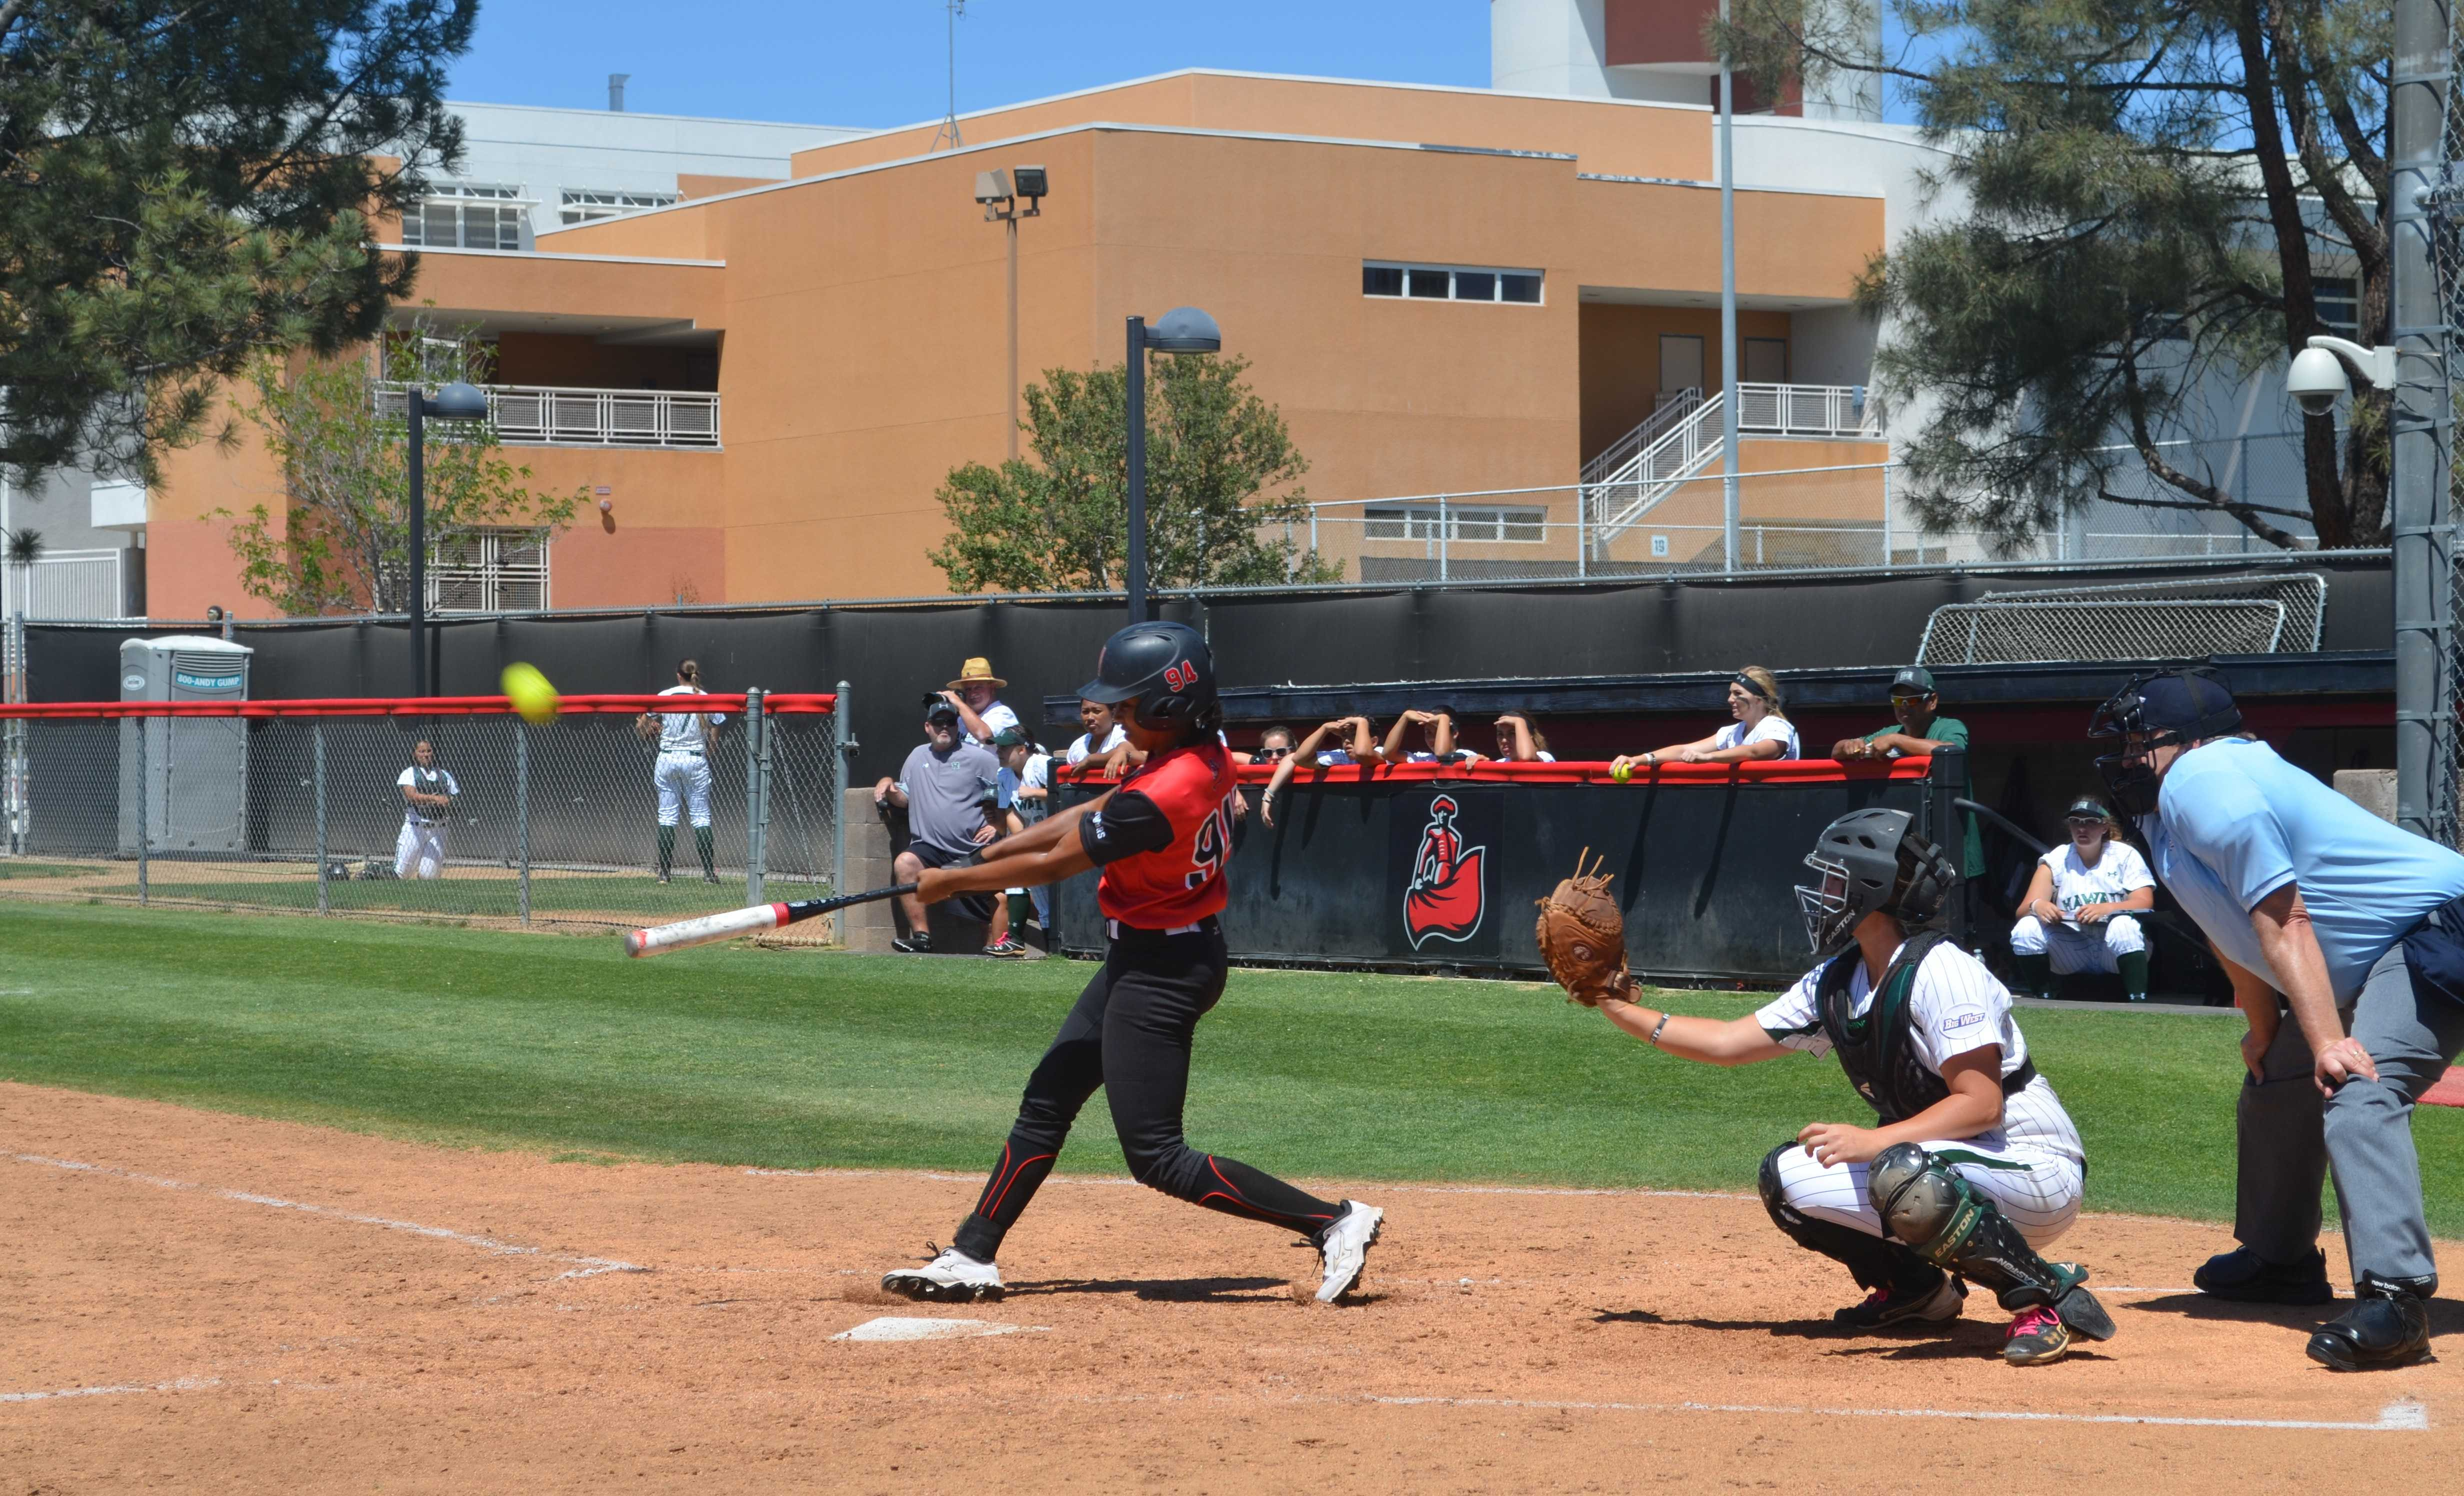 Junior Taylor Glover was three-for-four in the first game of CSUN's double header on Friday, Feb. 19, 2016. They lost the first game to Weber State, but won the second against Portland State. (File Photo / The Sundial)